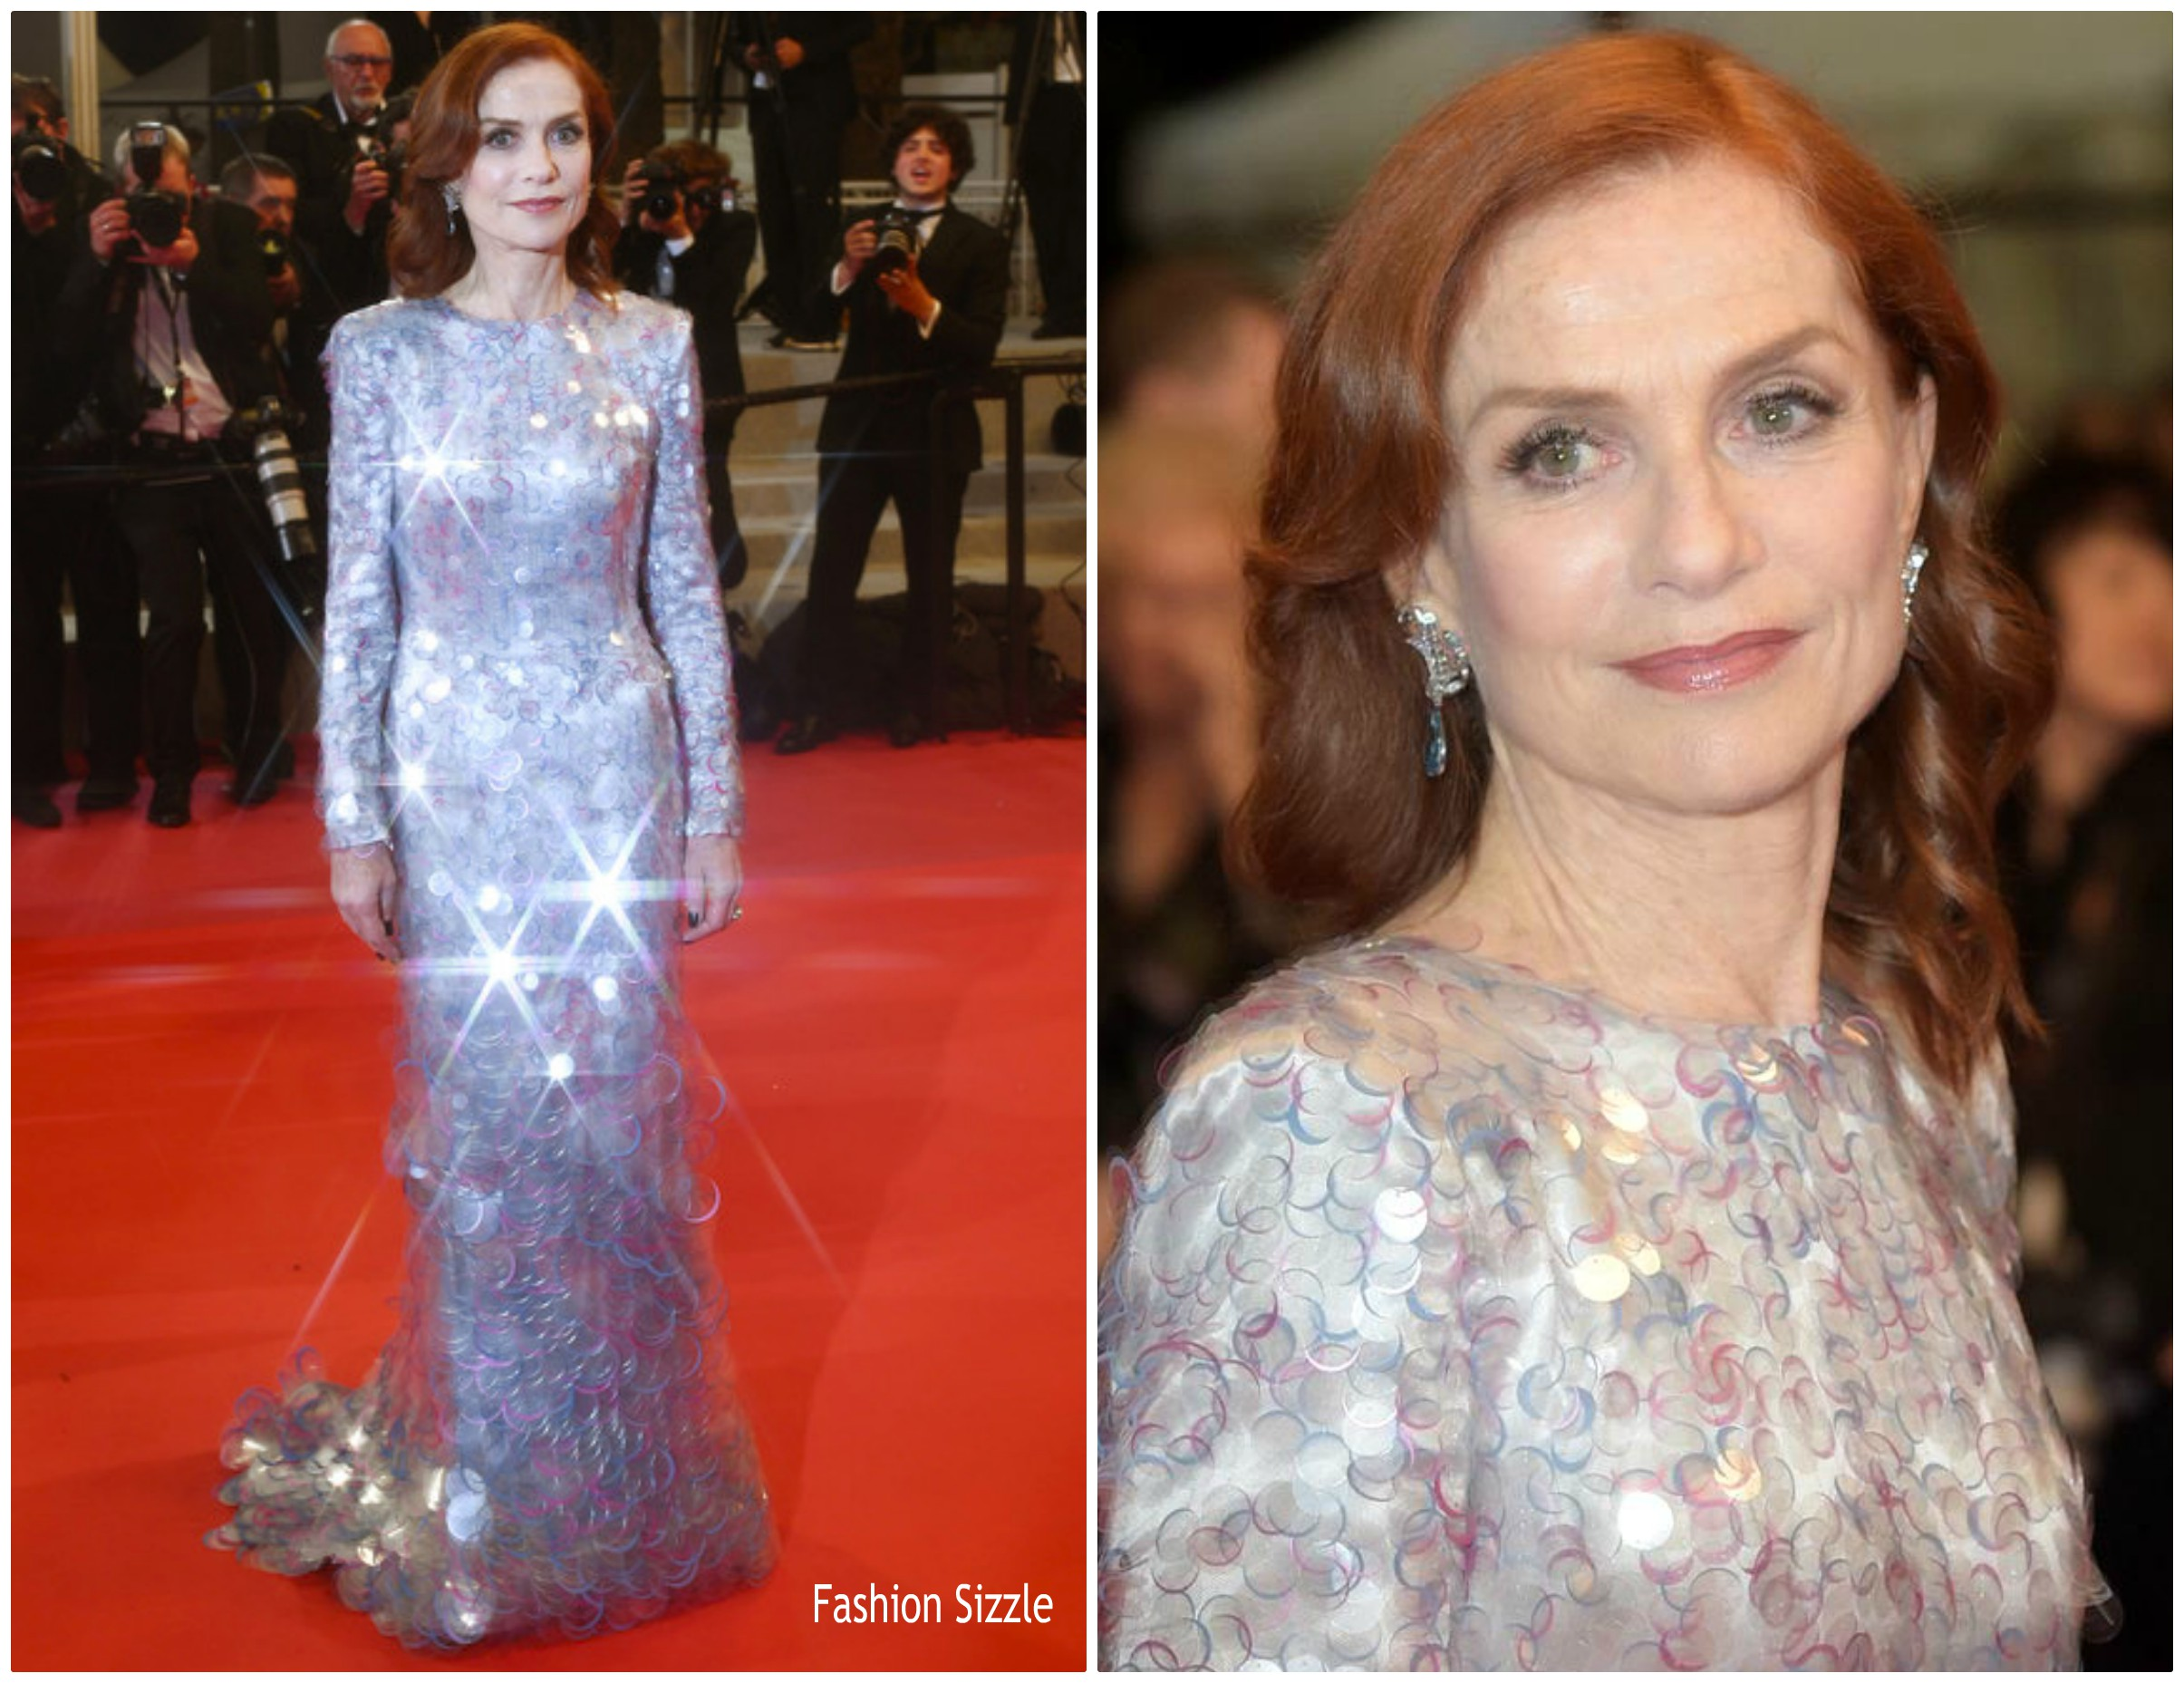 isabelle-huppert-in-armani-prive–frankie-cannes-film-festival-premiere